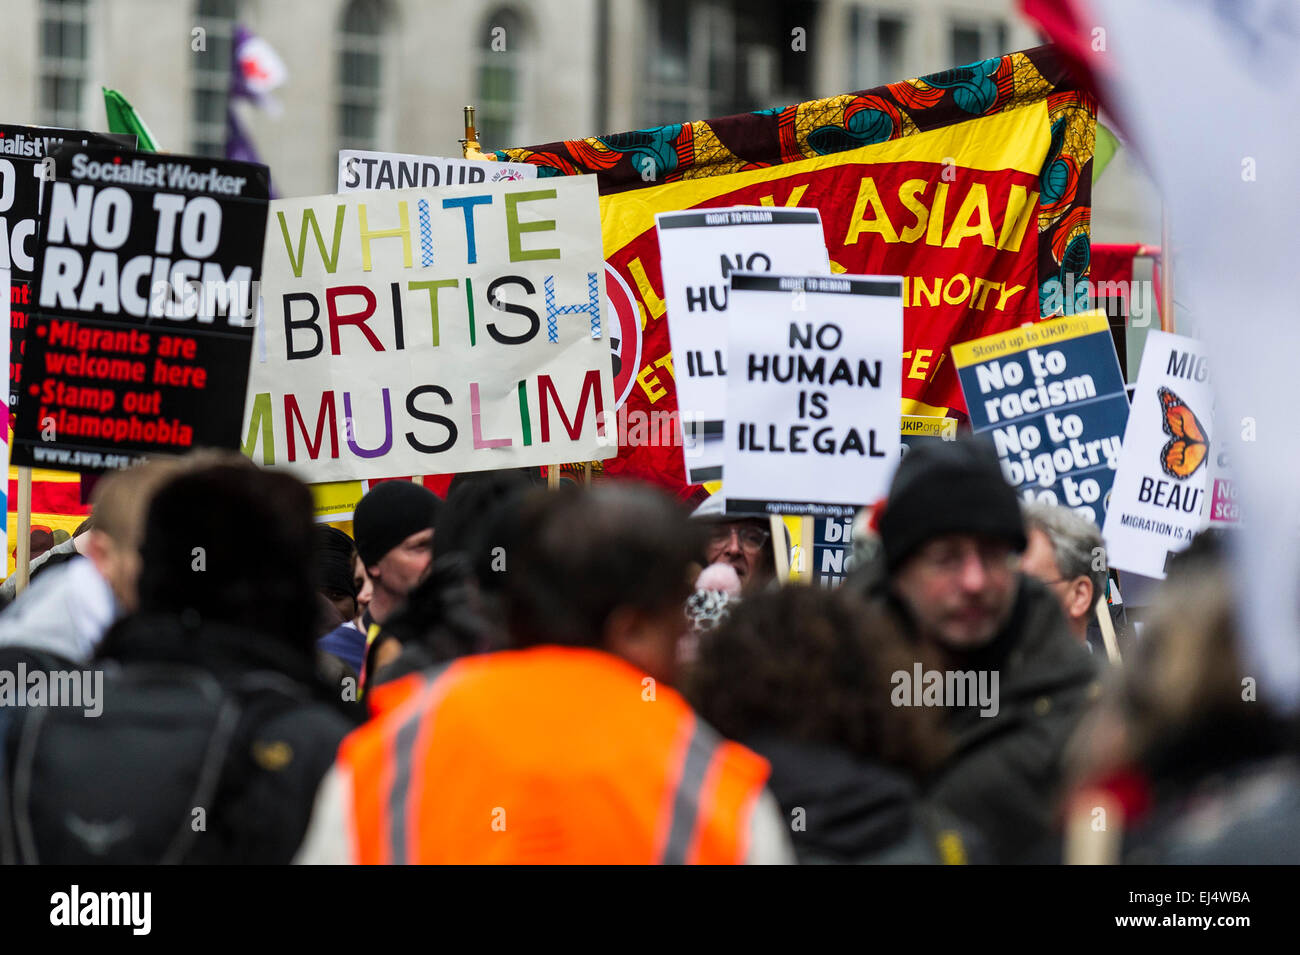 London, UK. 21st March, 2015. Thousands gathered today in London to participate in the Stand Up To Racism demonstration - Stock Image